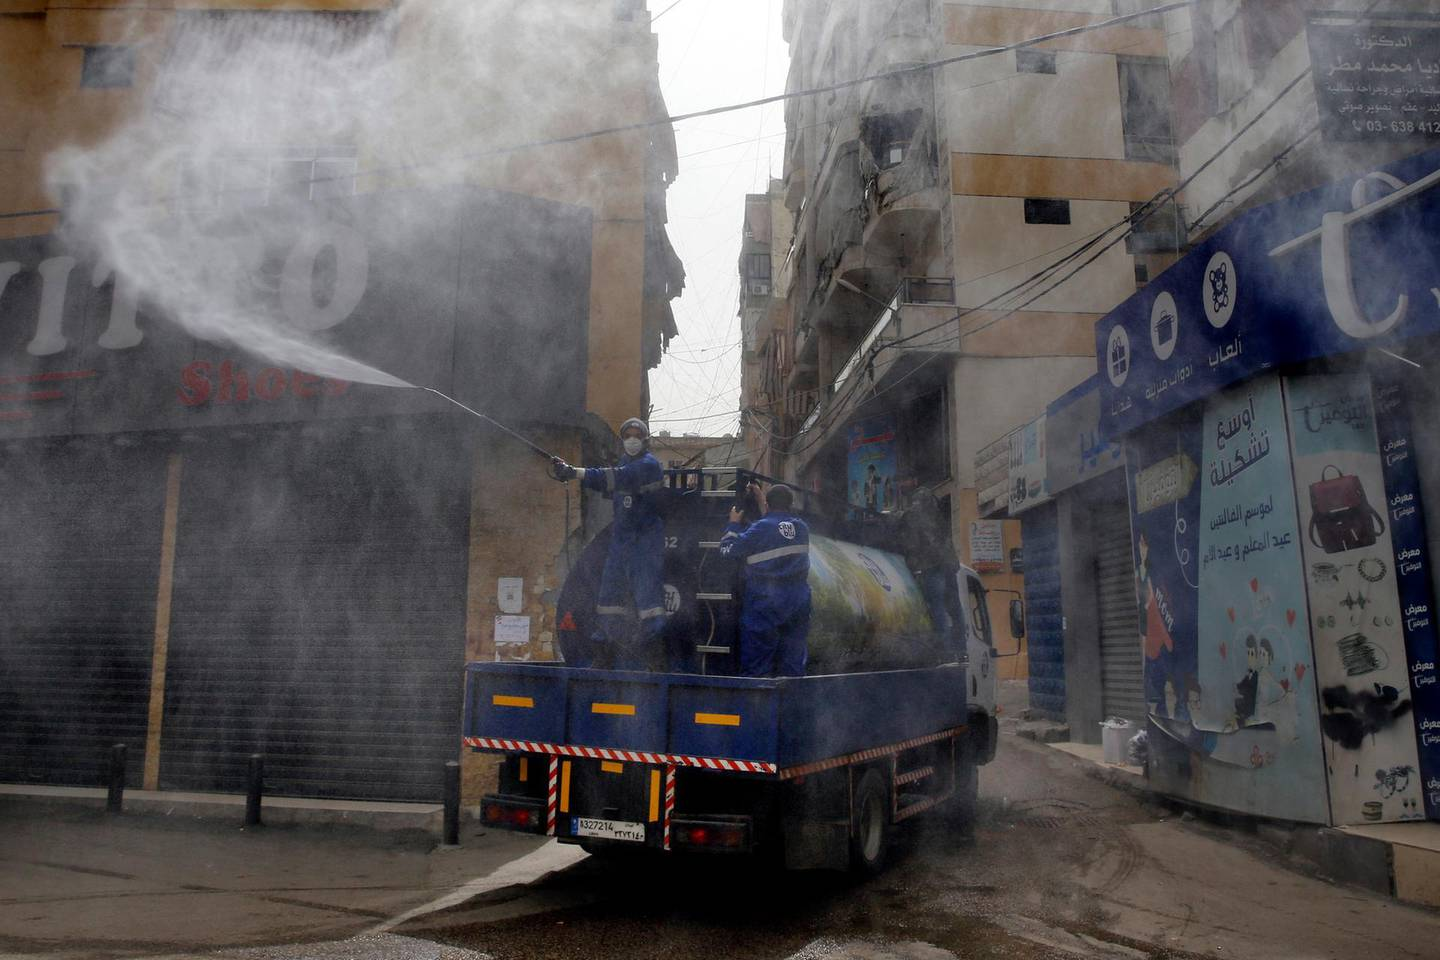 In this Friday, March 27, 2020 photo, members of the Islamic Health Society, an arm of the Iran-backed militant Hezbollah group sprays disinfectants as a precaution against the coronavirus, in a southern suburb of Beirut, Lebanon. Hezbollah has mobilized the organizational might it once deployed to fight Israel or in Syria's civil war to battle the spread of the novel coronavirus. It aims to send a clear message to its Shiite supporters that it is a force to rely on in times of crisis -- particularly after it suffered a series of blows to its prestige. (AP Photo/Bilal Hussein)